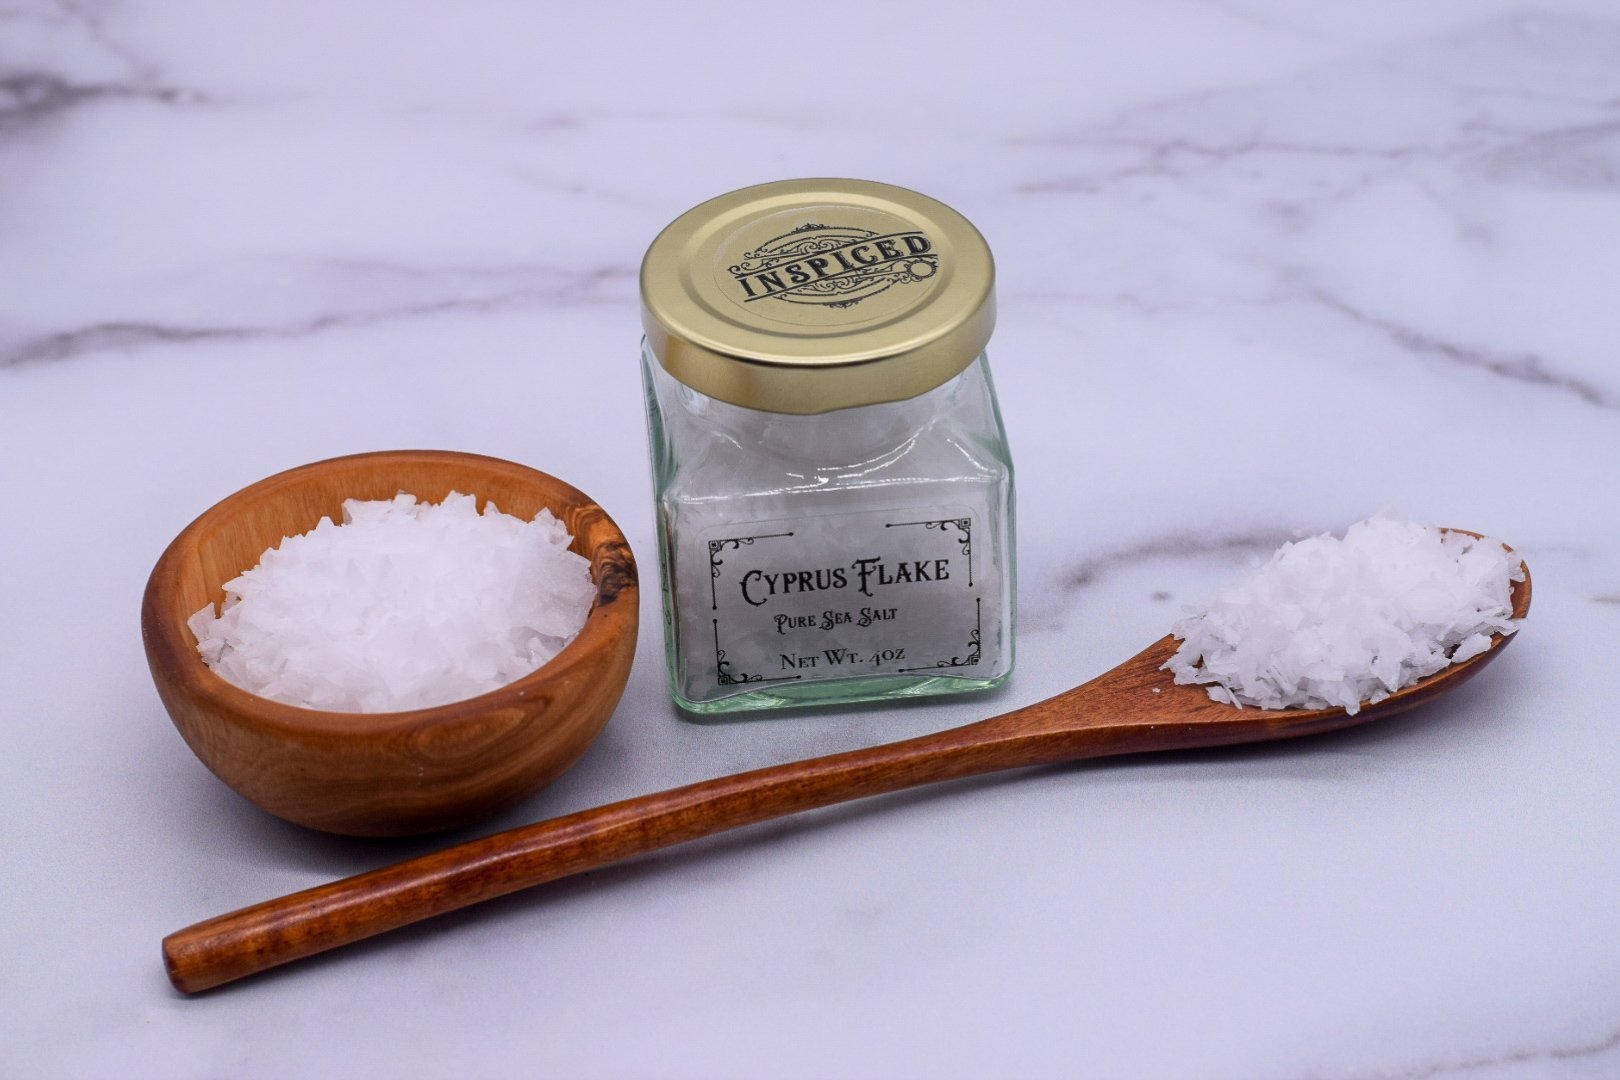 Cyprus Flake Sea Salt - Inspiced.com